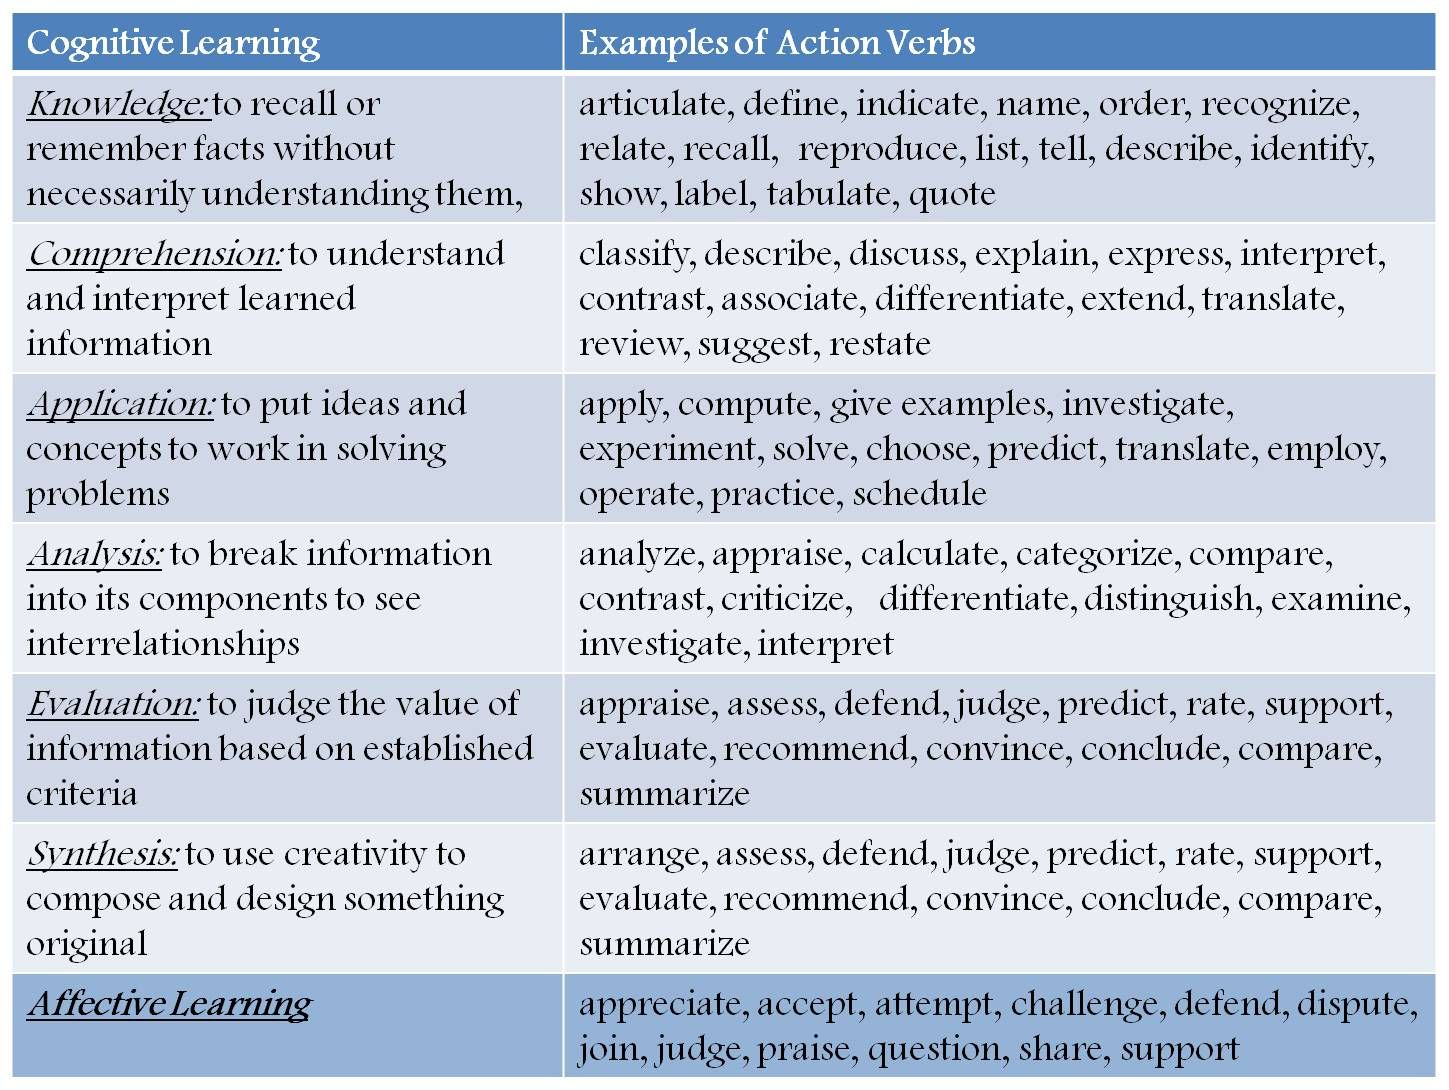 Swbat Verbs According To Bloom S Taxonomy Pyramid I Know I Can T Be The Only One Who Needs Thi Teaching Inspiration Classroom Instruction Teacher Resources [ 1090 x 1449 Pixel ]